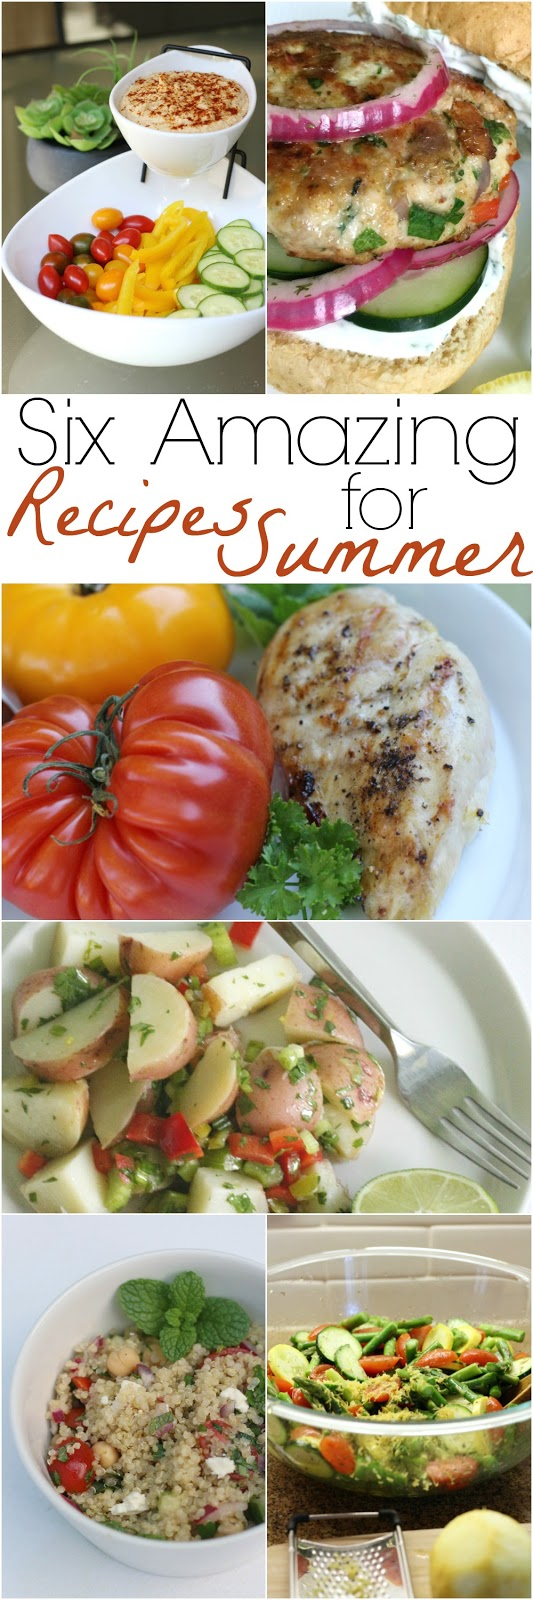 Fresh, light recipes perfect for summer, summer cooking, grilling marinade, light recipes, healthy recipes, eating healthy, summer season